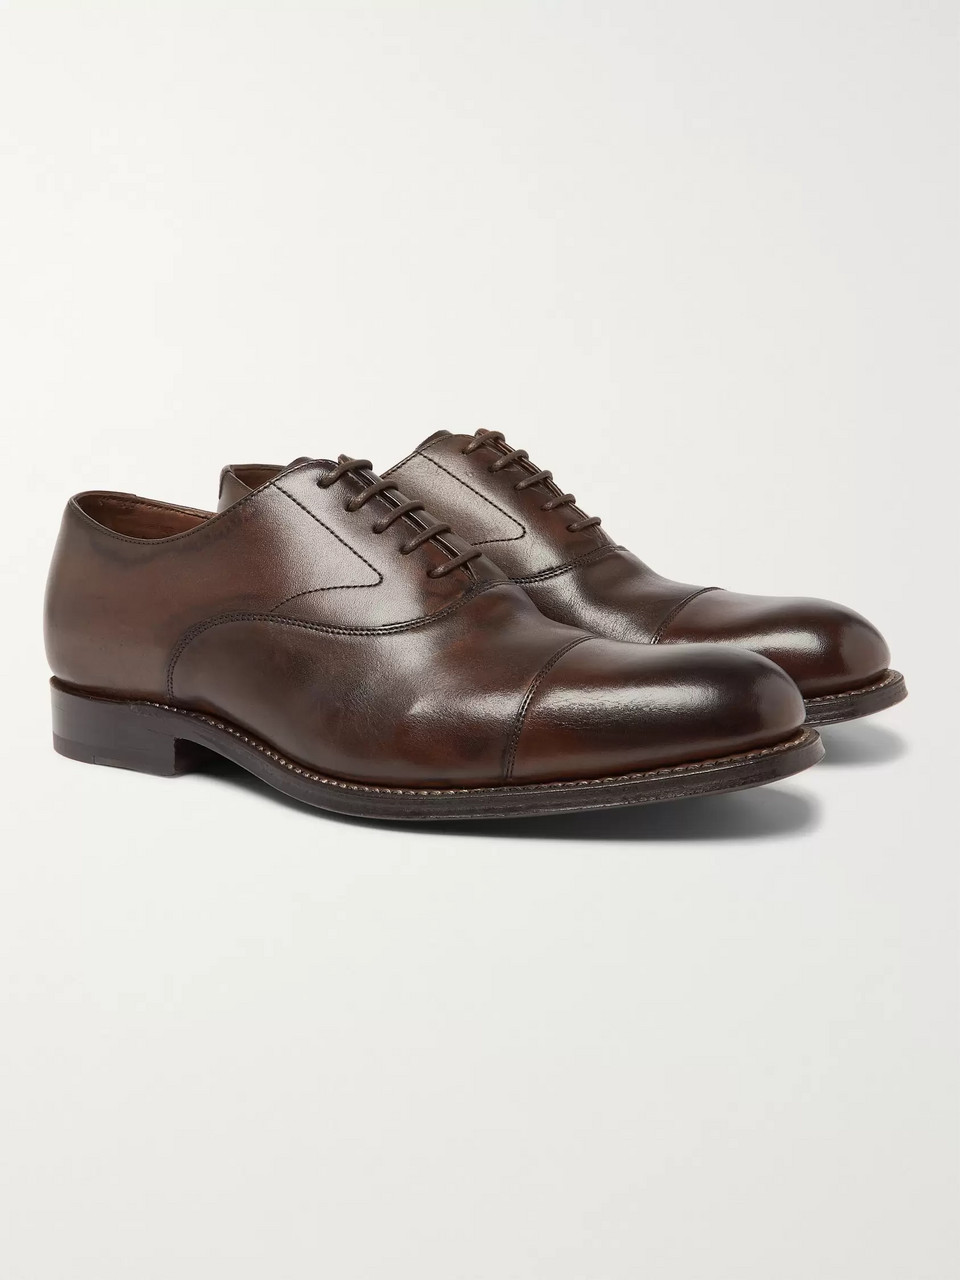 Brown Lucas Cap Toe Leather Oxford Shoes Grenson Mr Porter